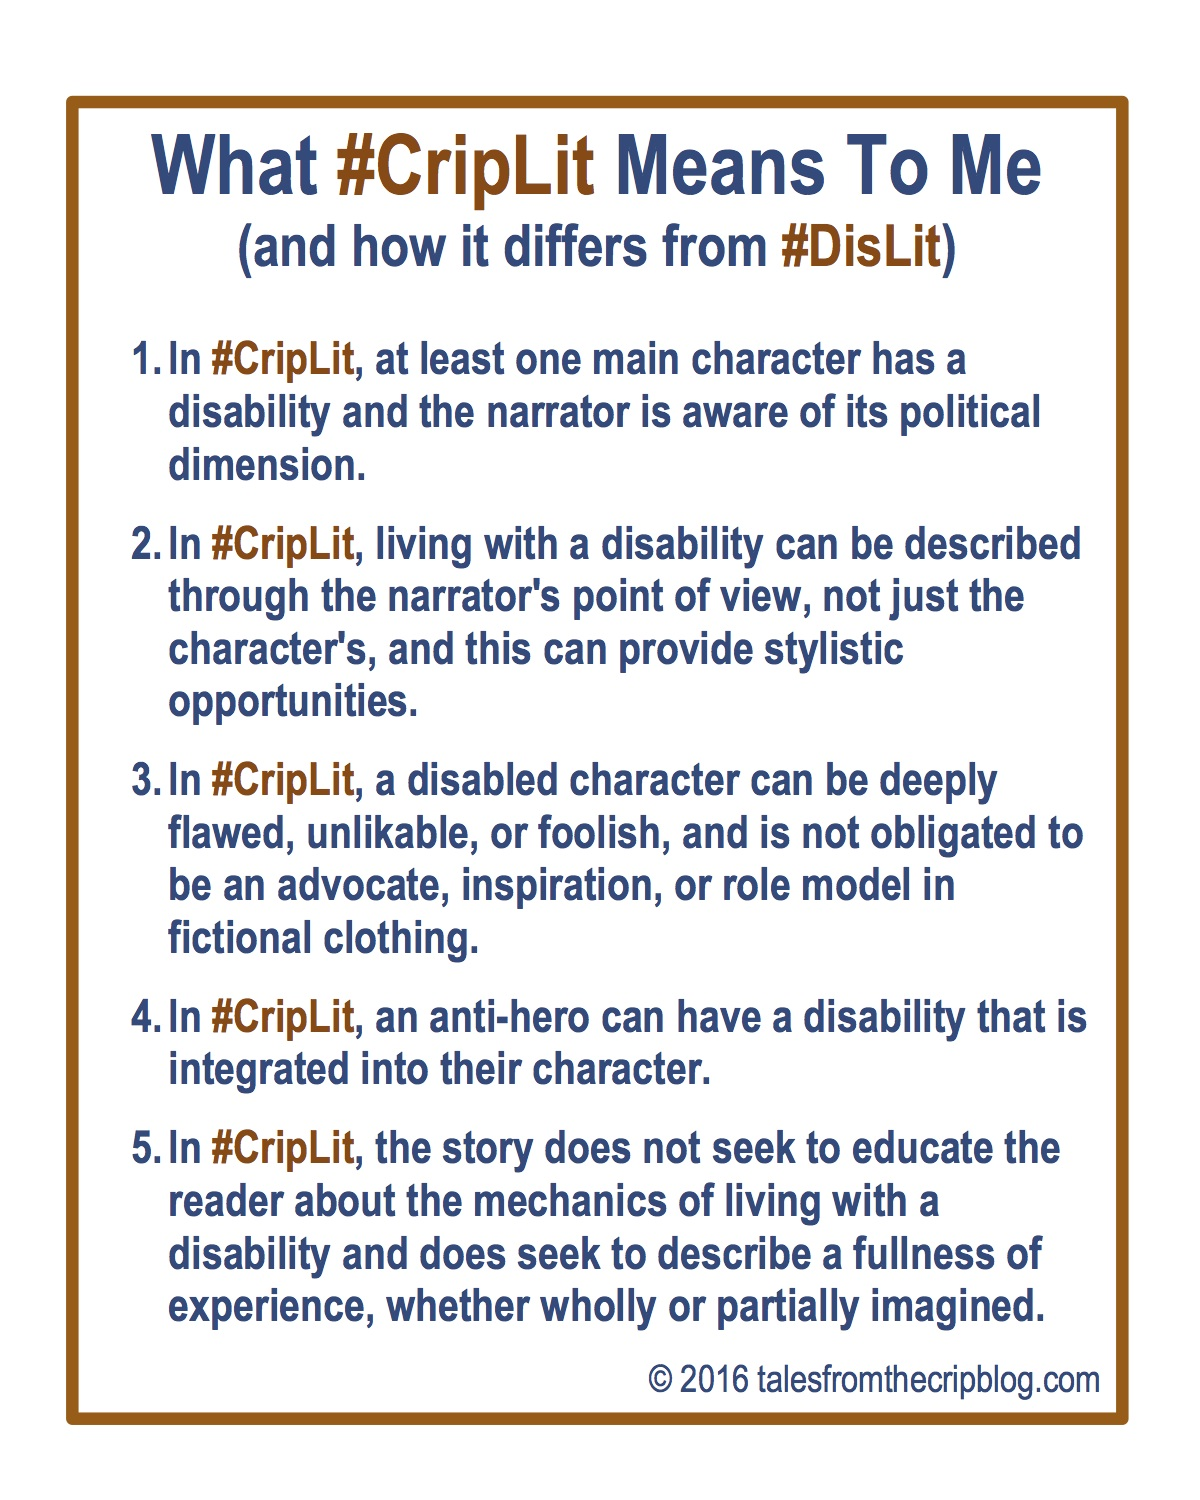 What #CripLit Means To Me (and How It Differs From #DisLit